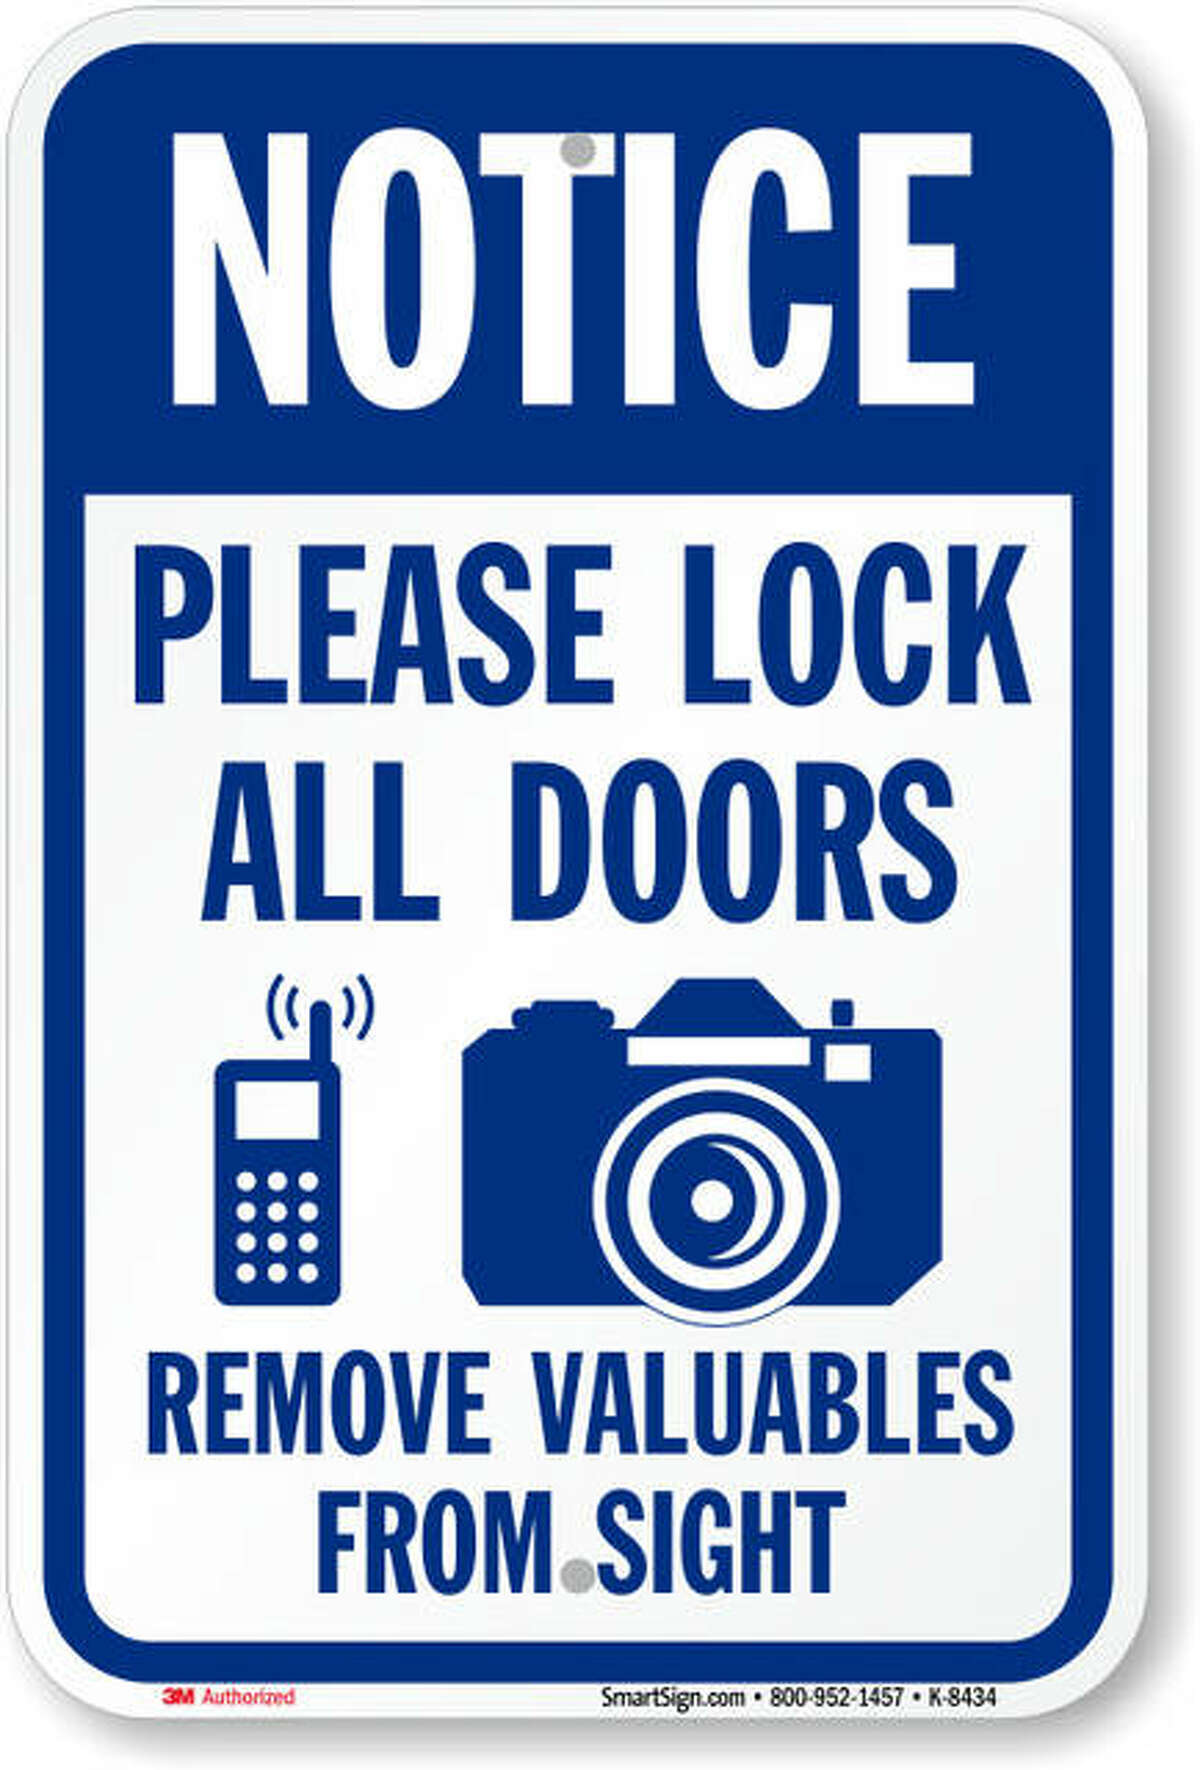 """The Bethalto Police Department recently changed its Facebook page's profile picture to this sign, reminding citizens to """"please lock all doors"""" and """"remove valuables from sight"""" after six more vehicles were broken into Tuesday evening. All the vehicles were unlocked, Bethalto Police Deputy Chief Craig Welch said."""